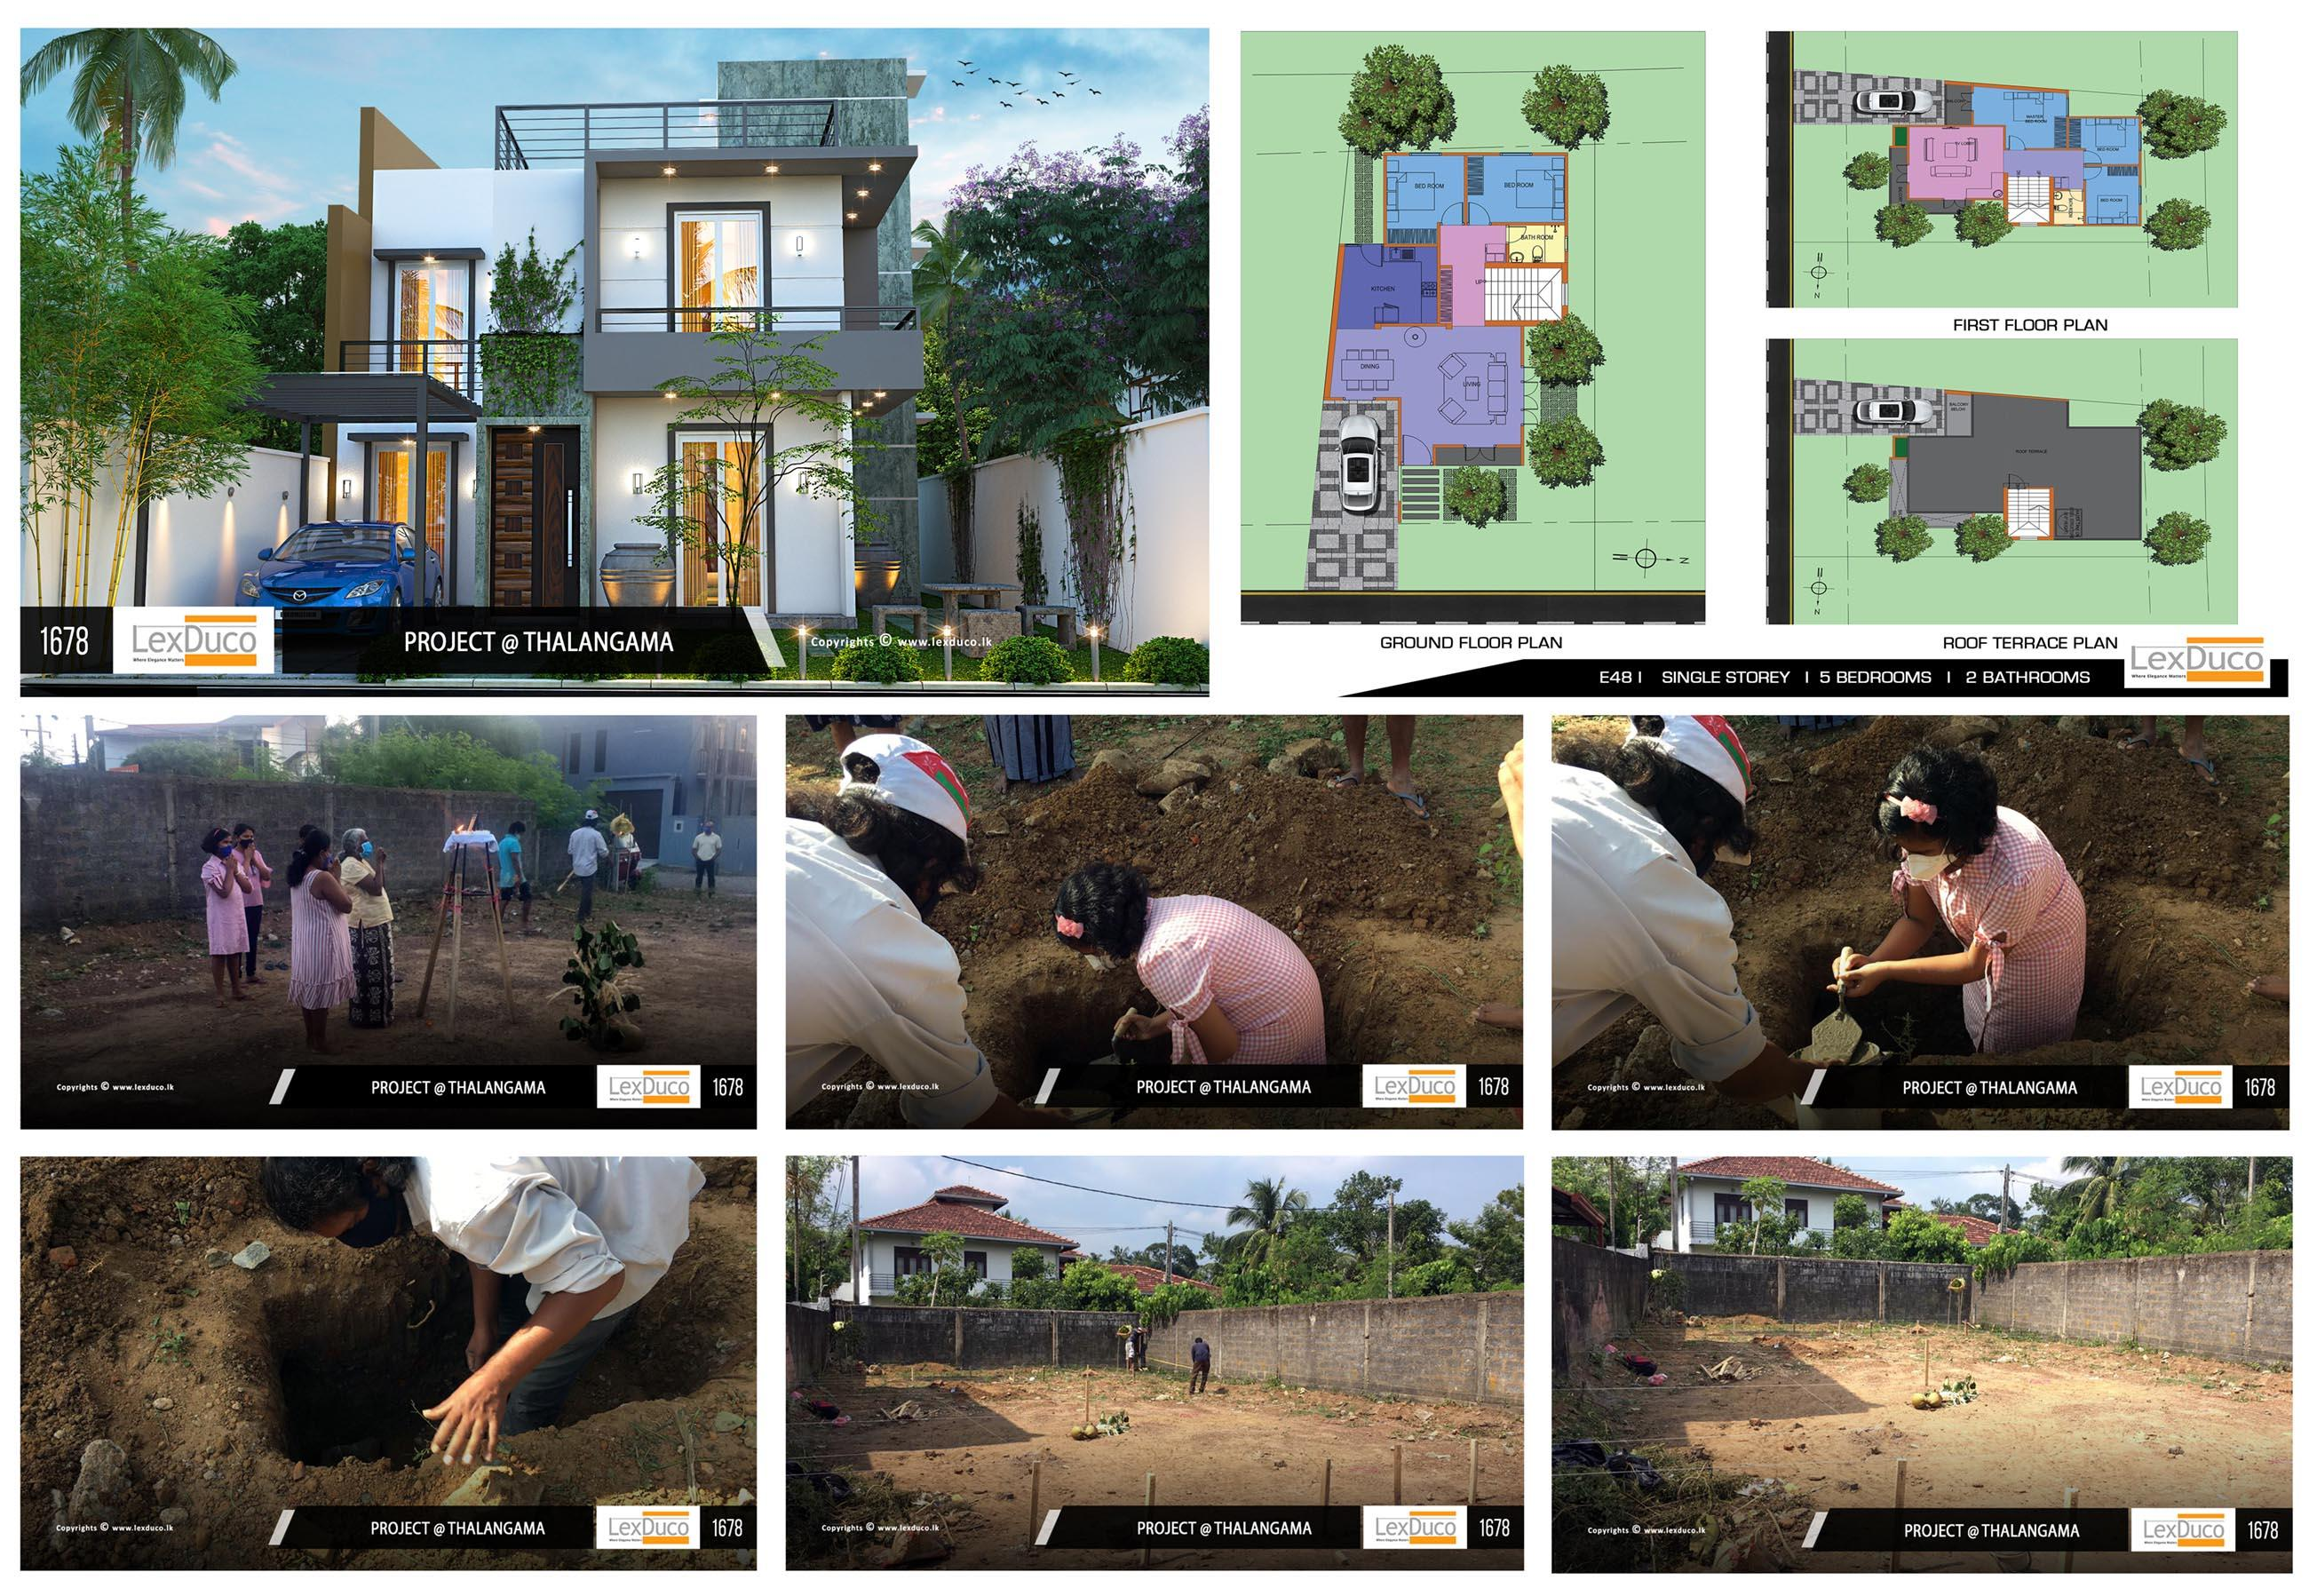 Residential Housing Project at Thalangama | Lex Duco